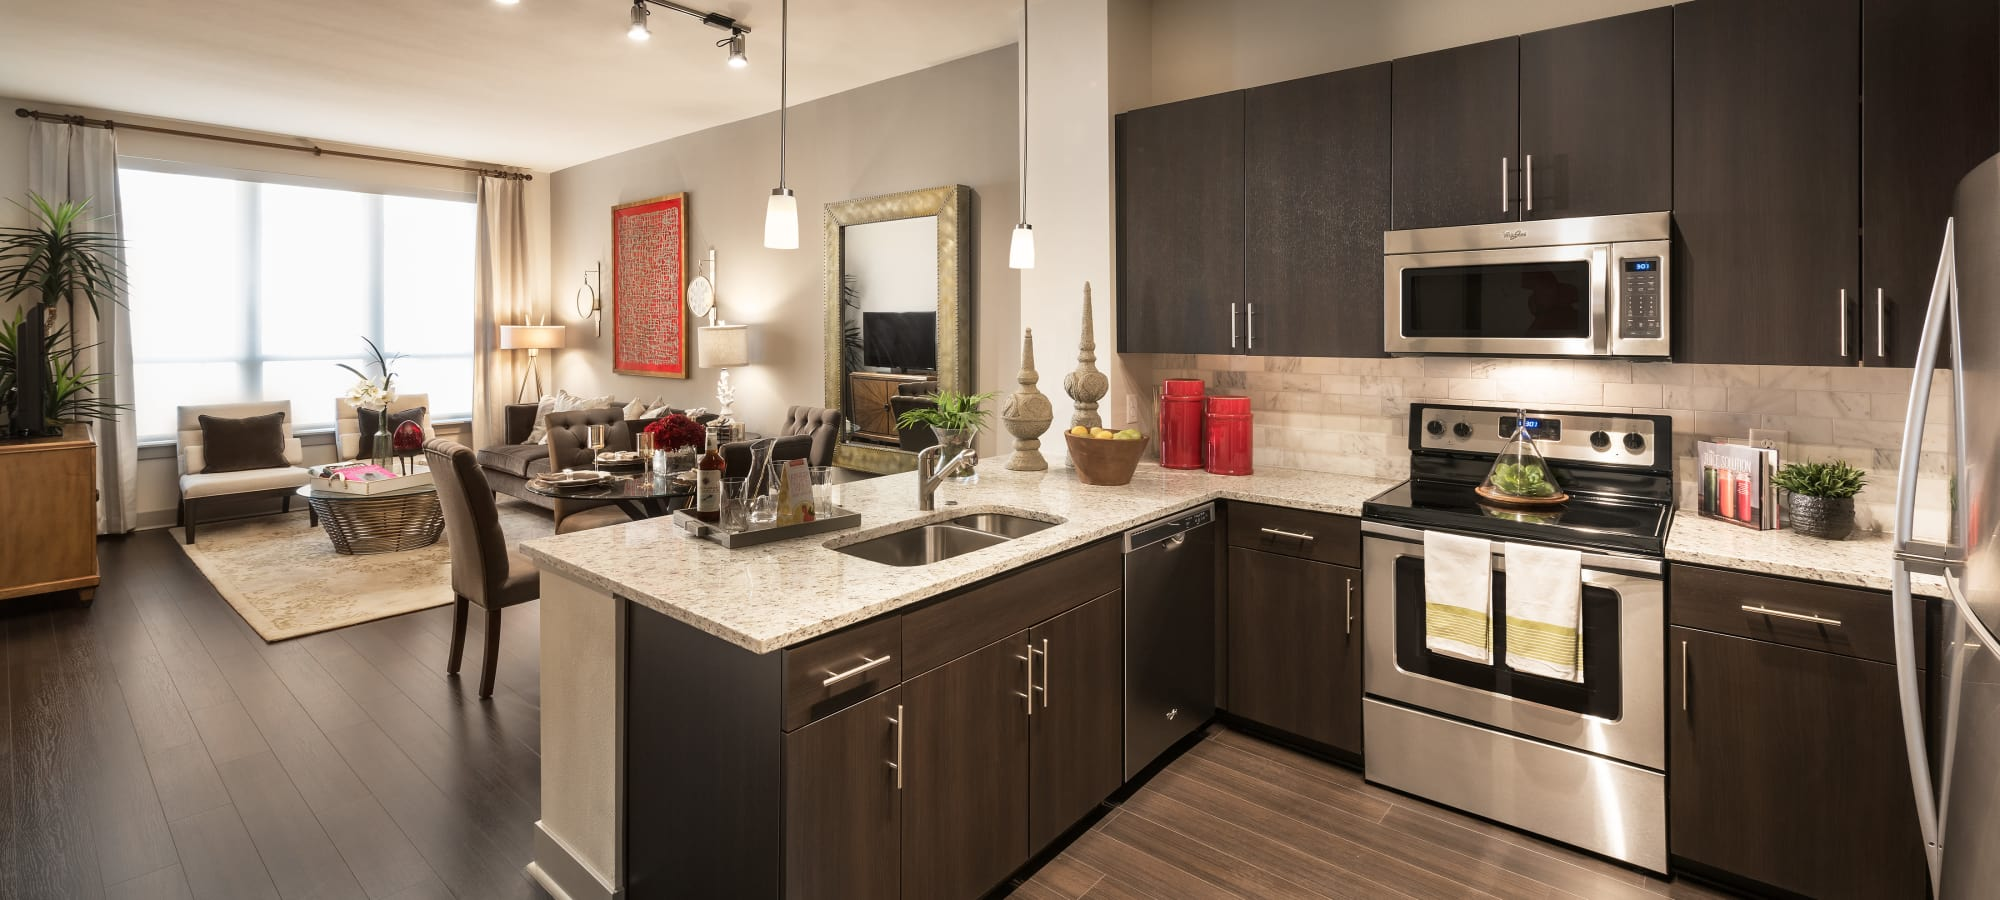 Stainless-steel appliances in model home at Emerson Mill Avenue in Tempe, Arizona